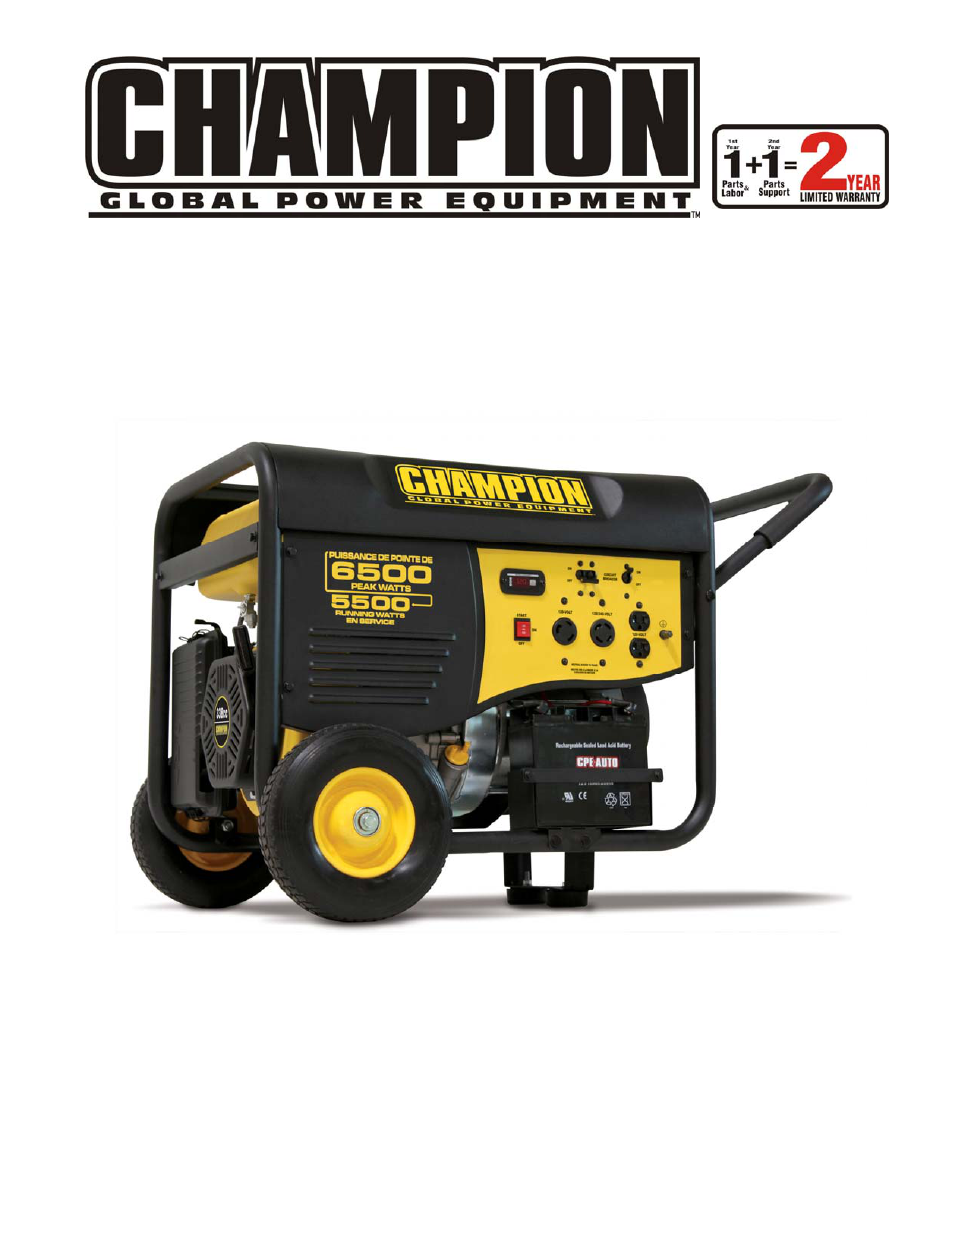 Homelite Lr 2500 Carb Diagram Electrical Wiring Diagrams Generator 5500 Watt Www Topsimages Com Champion Owners Manual Trusted Schematic 967x1251